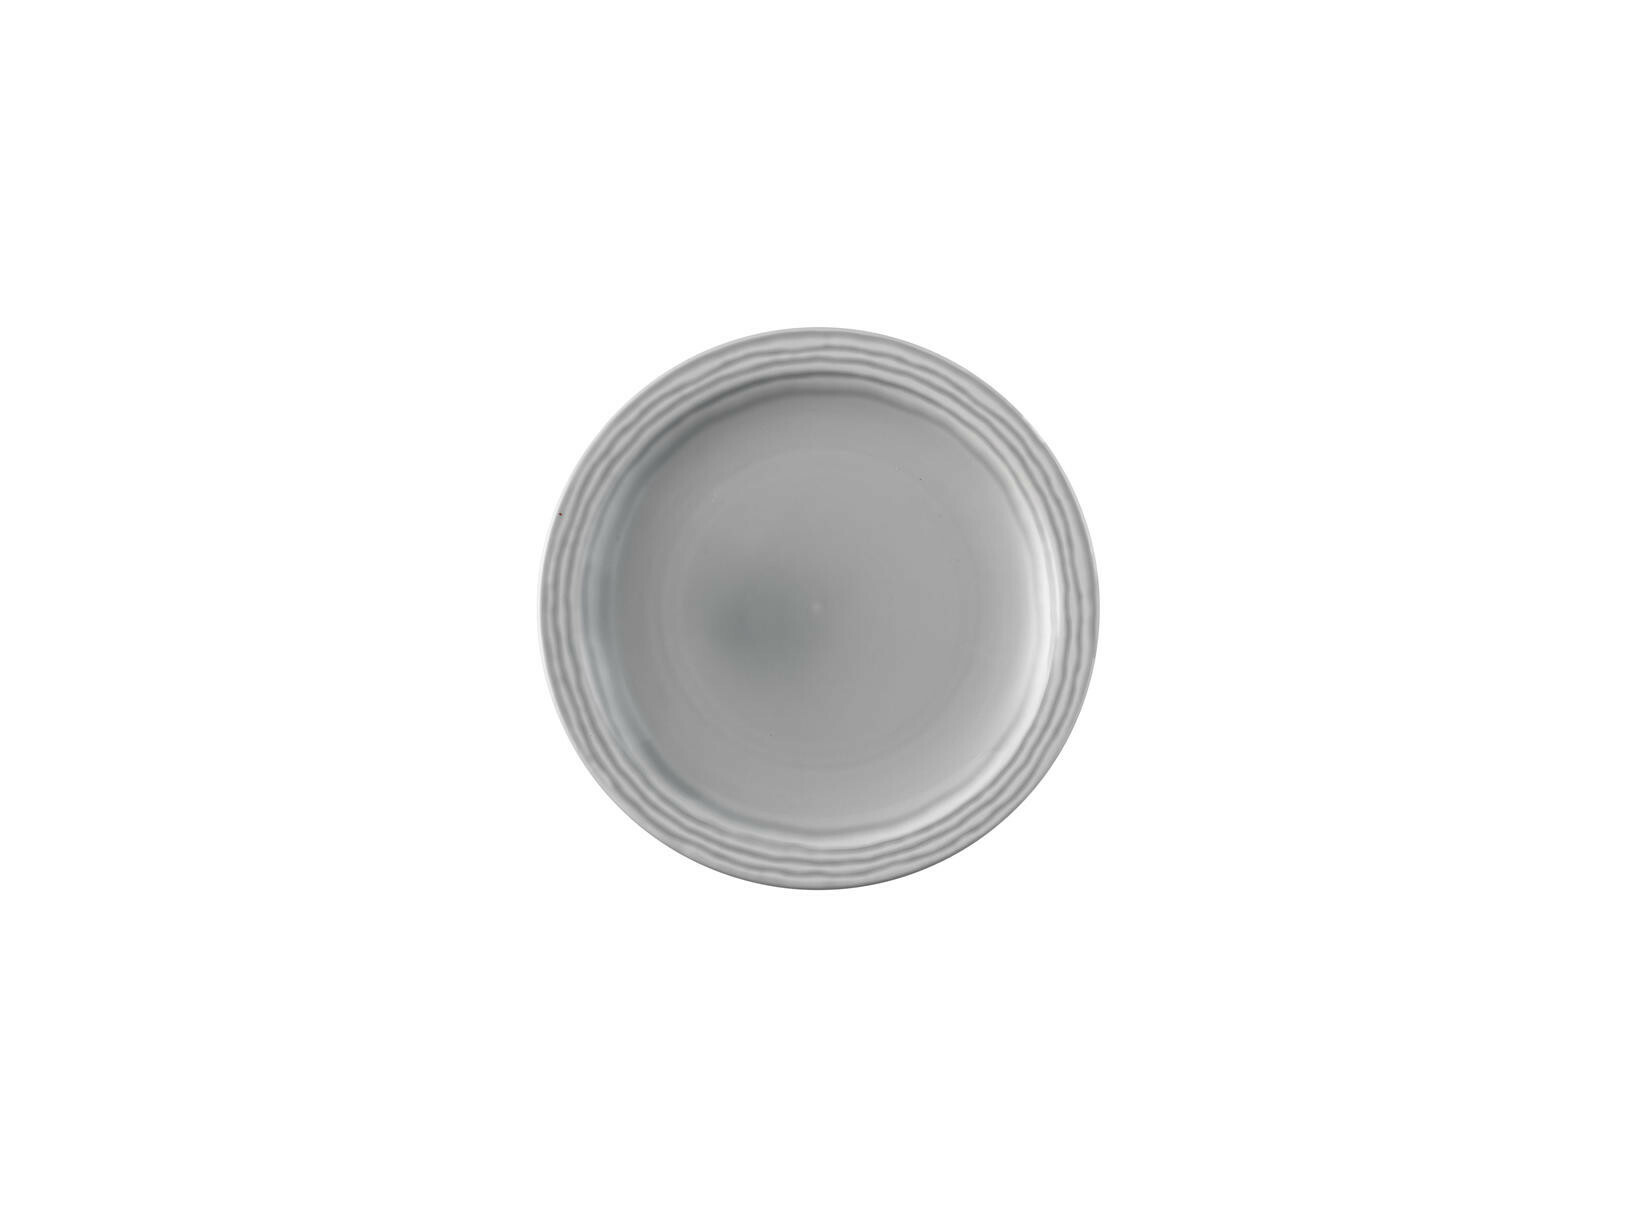 Dudson Harvest Norse Grey bord smalle rand 28 cm